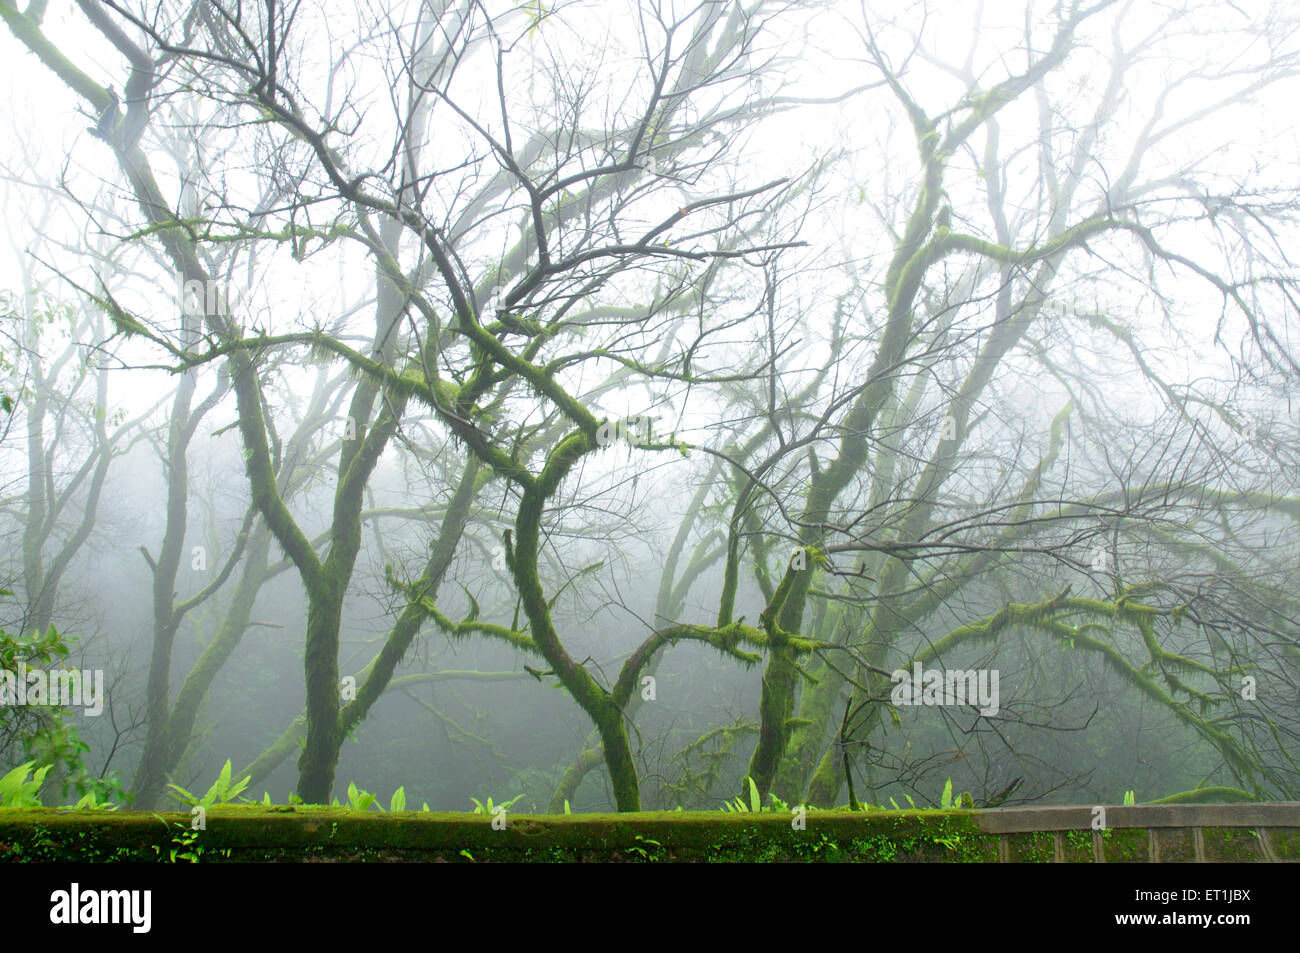 Foggy monsoon atmosphere amidst trees covered with moss ; Mahabaleshwar ; Maharashtra ; India 19 Jul 2008 - Stock Image